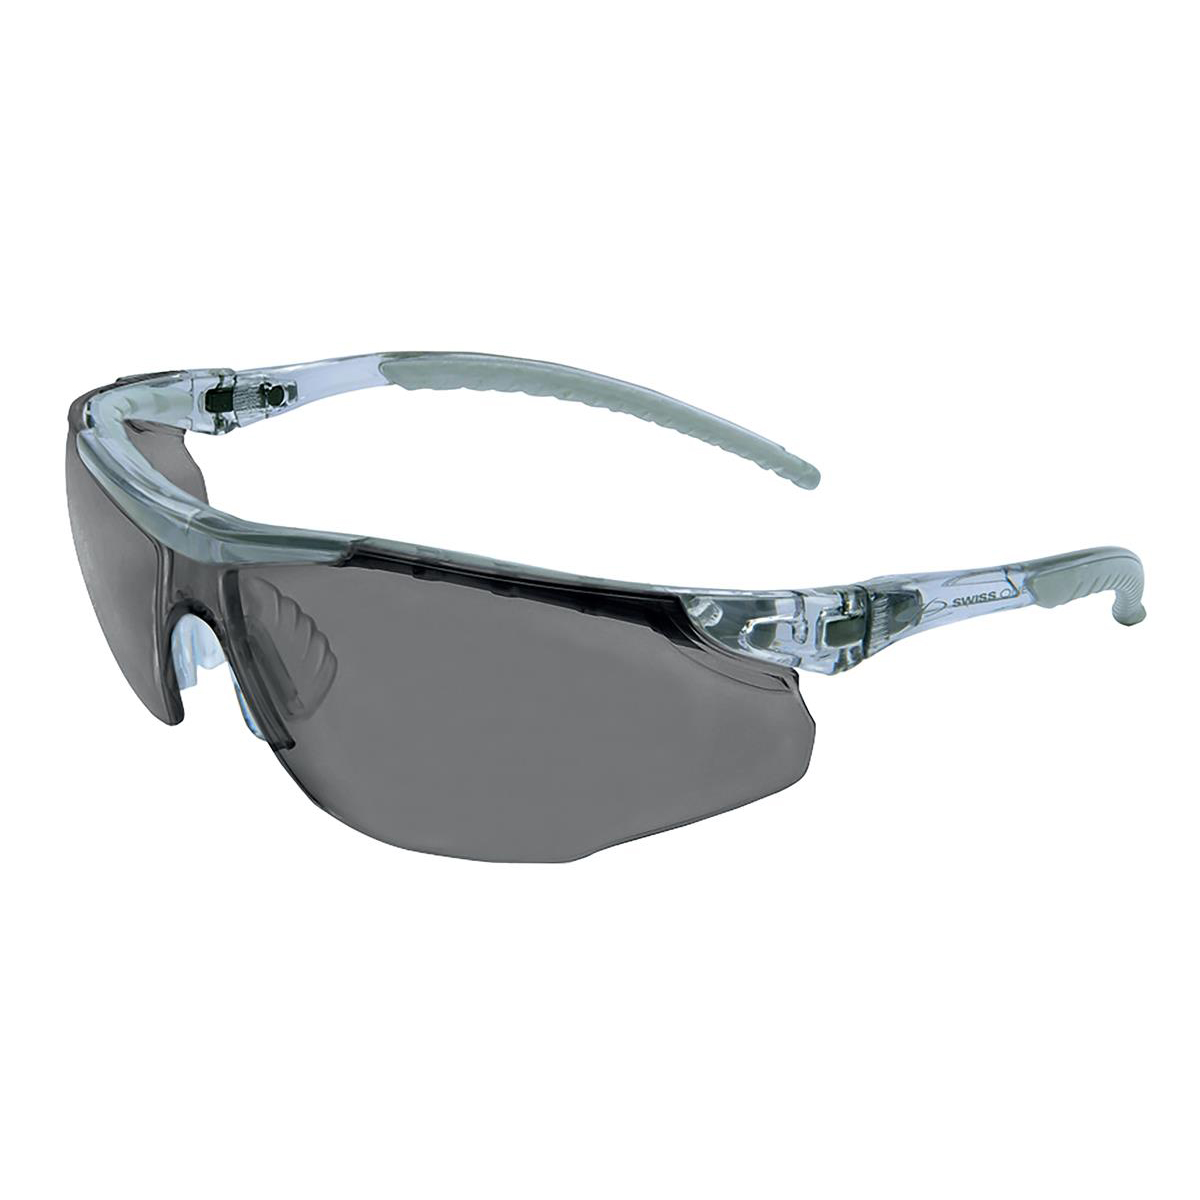 Safety glasses JSP Cayman Safety Spectacles Adjustable with Cord Smoke Ref 1CAY23S